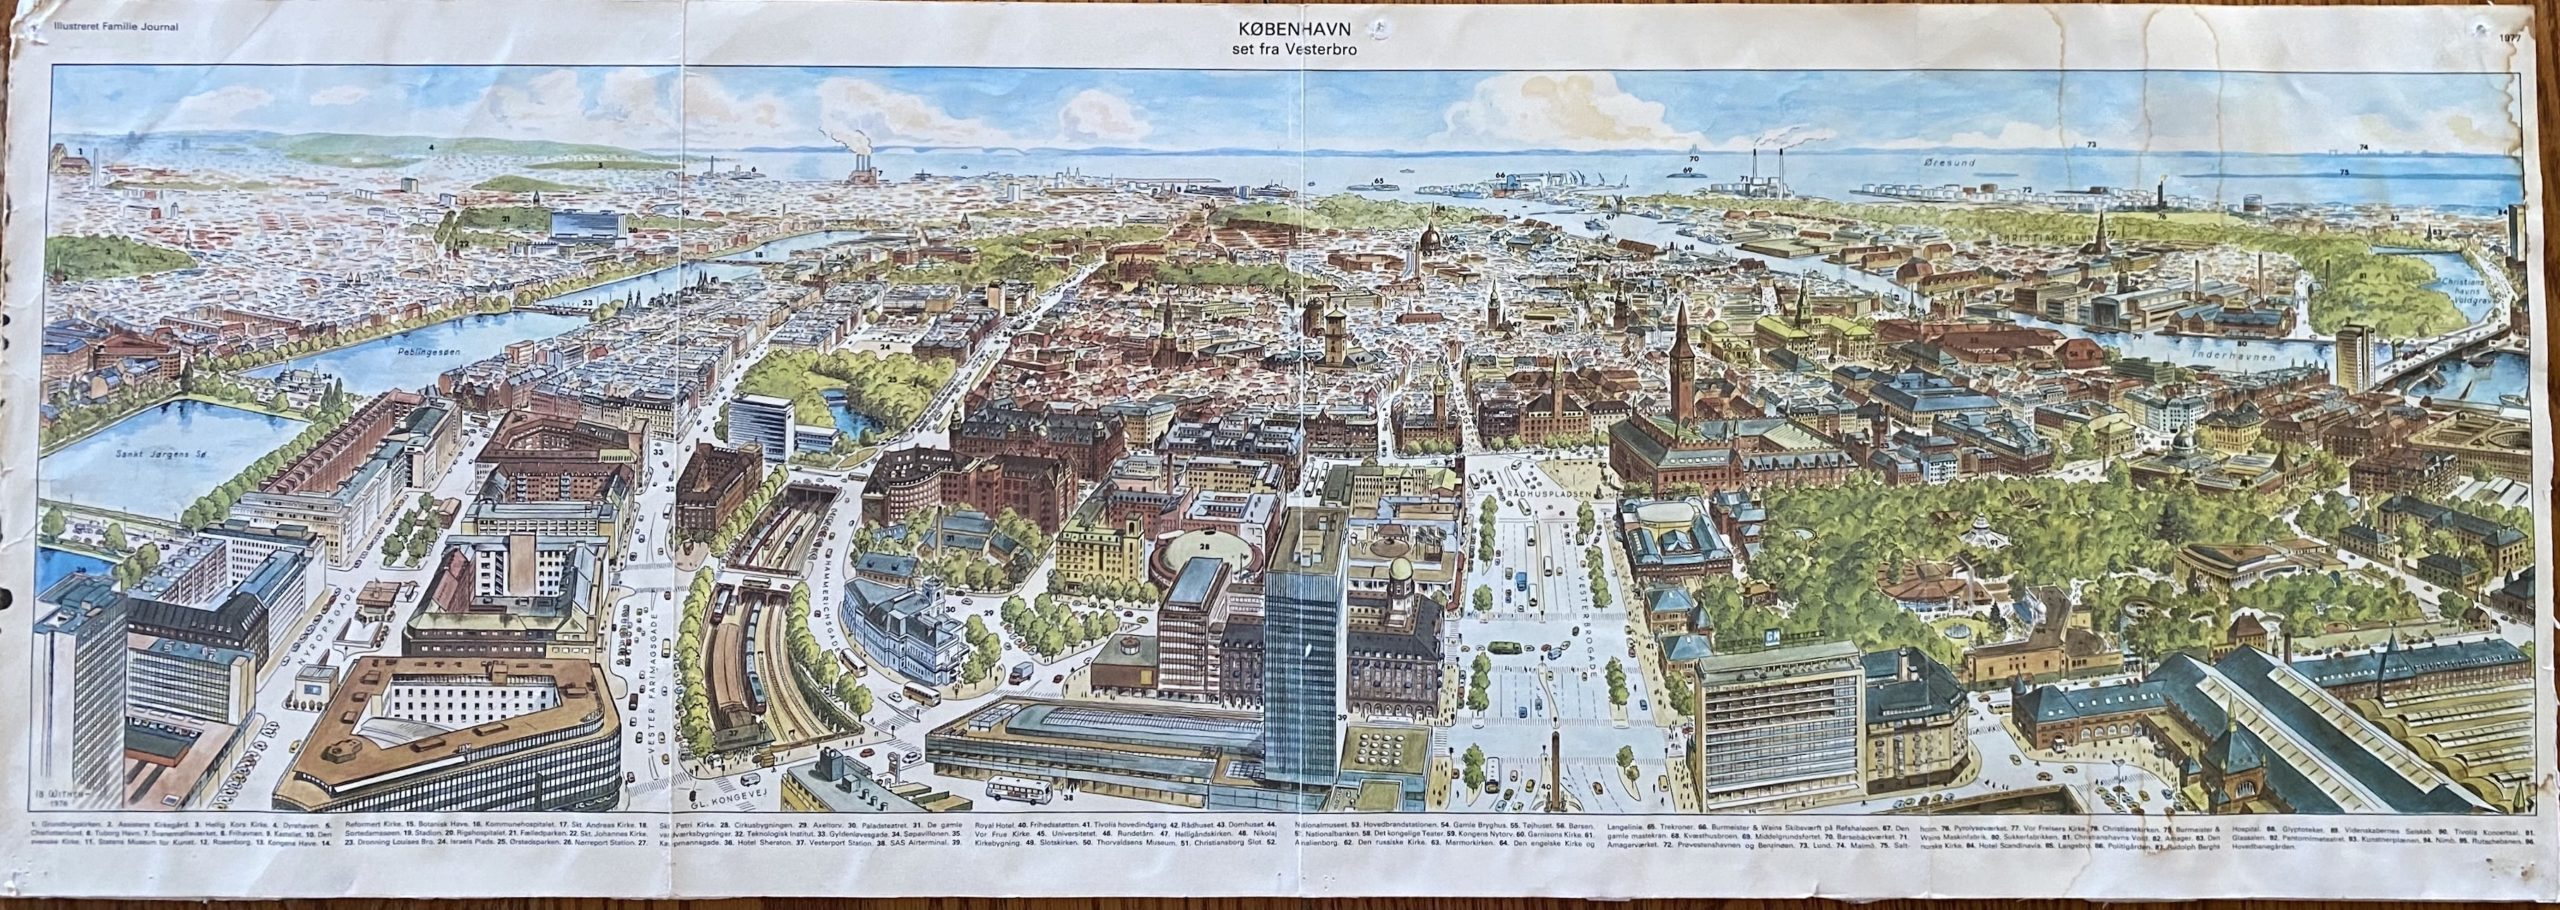 mercury retrograde memories had me accessing the time I spent in Copenhagen, Denmark, and how much I loved this color map of the city